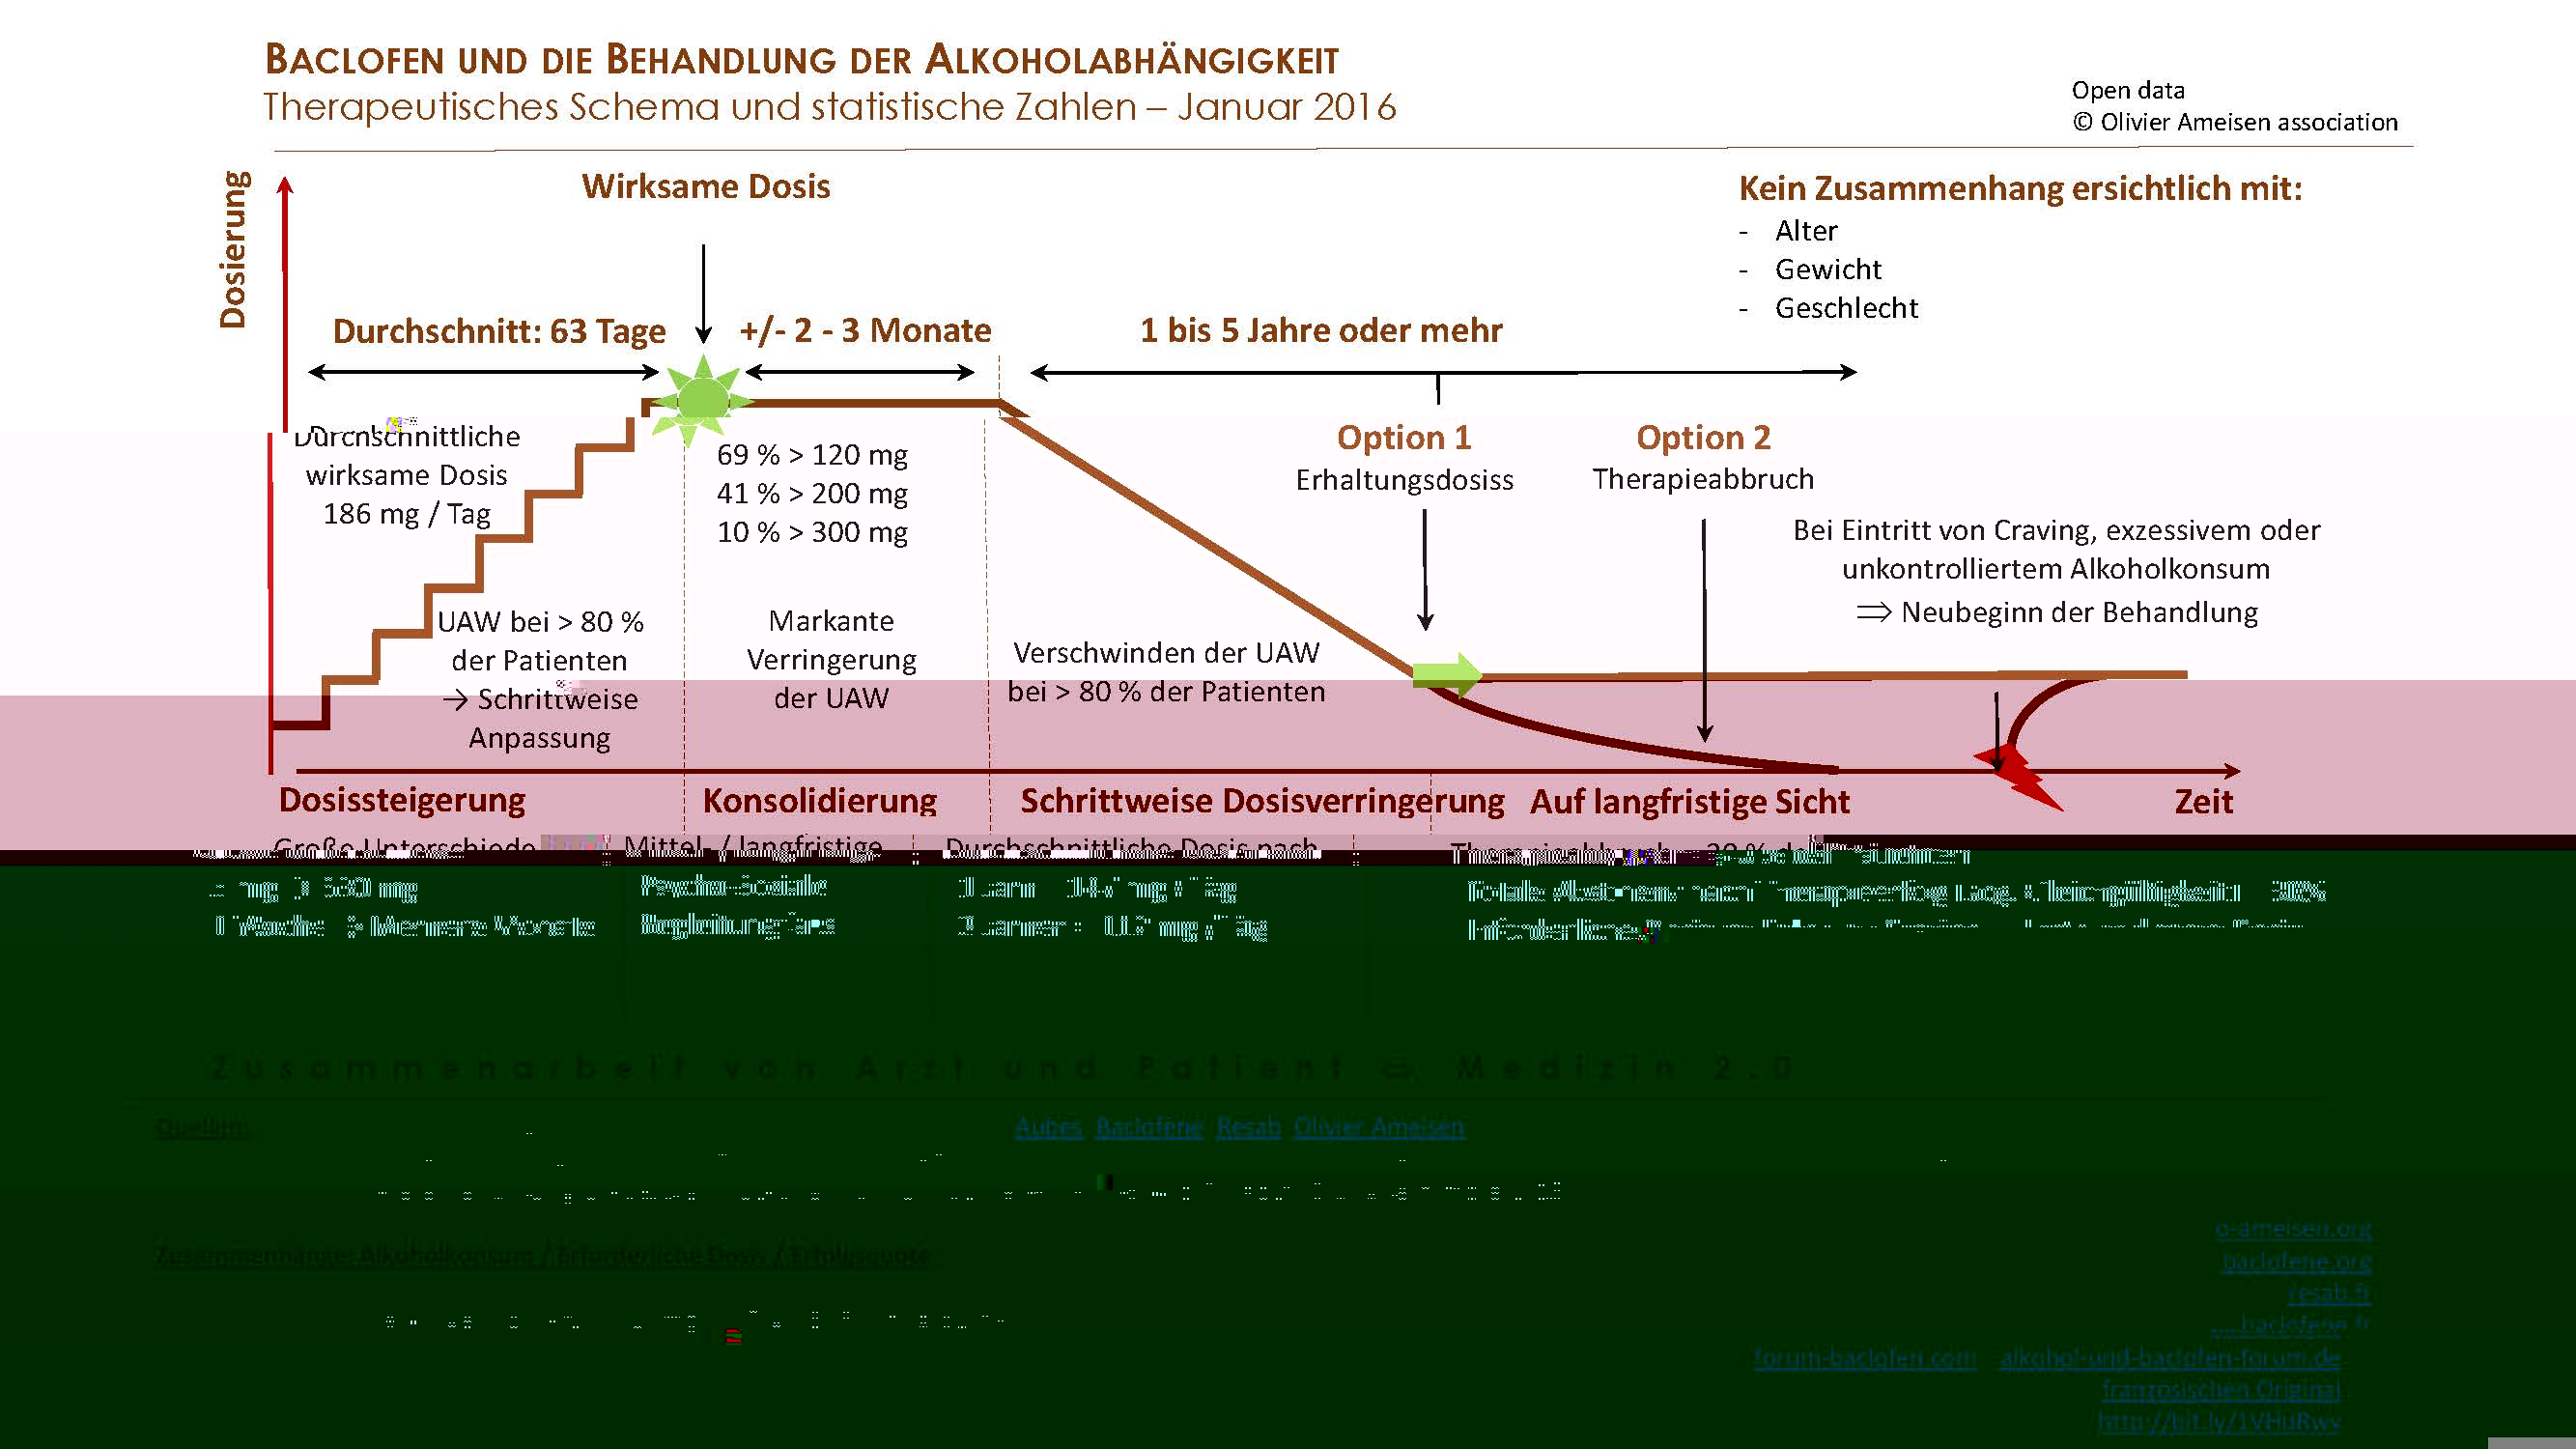 Schema_Therapeutique_Baclofène_german_0116-final.jpg